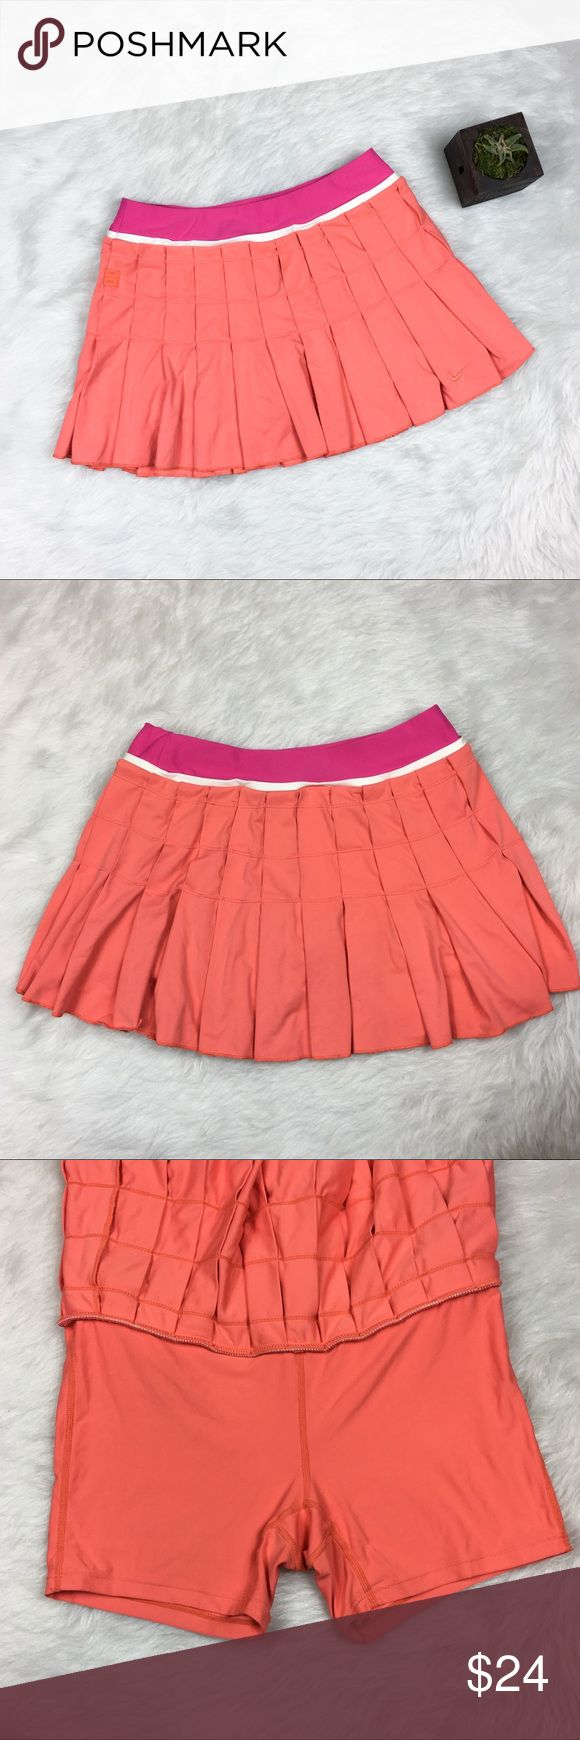 Nike Dry-Fit Tennis Skort Nike dry-fit tennis skort. Size small. It is 17' long with shorts underneath skirt. Skirt has a beautiful pleat to it. GUC with one small pen mark on the shorts as pictured and some wear. ❌No trades ❌ Modeling ❌No PayPal or off Posh transactions ❤️ I 💕Bundles ❤️Reasonable Offers PLEASE ❤️ Nike Skirts Mini